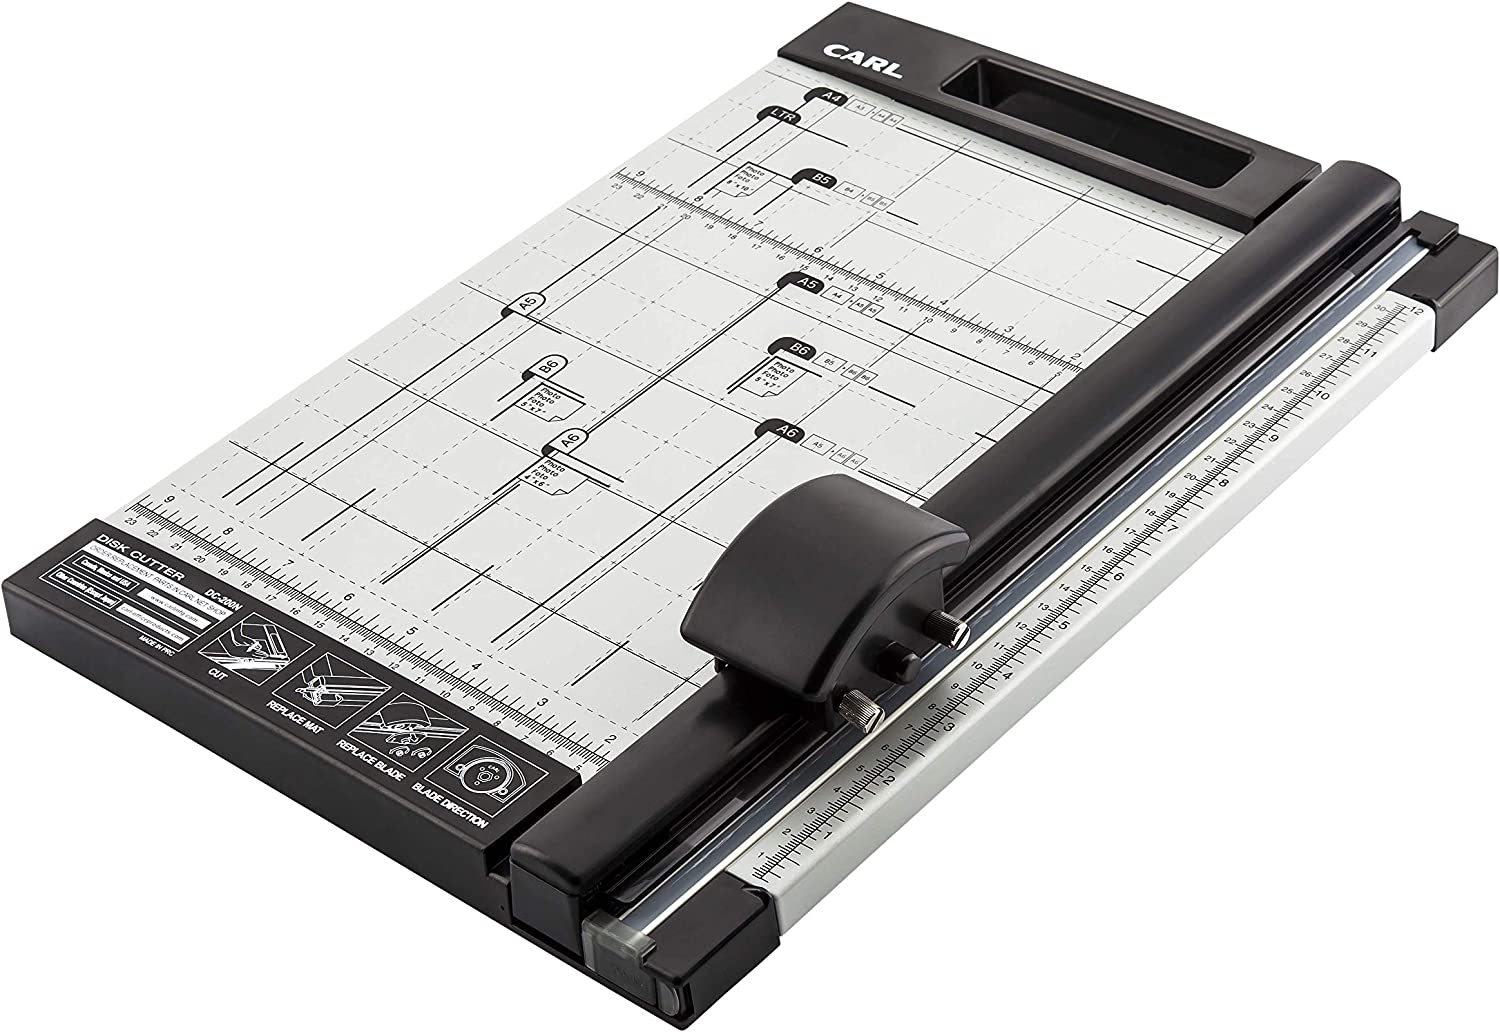 CARL 12 inch Rotary Paper Trimmer